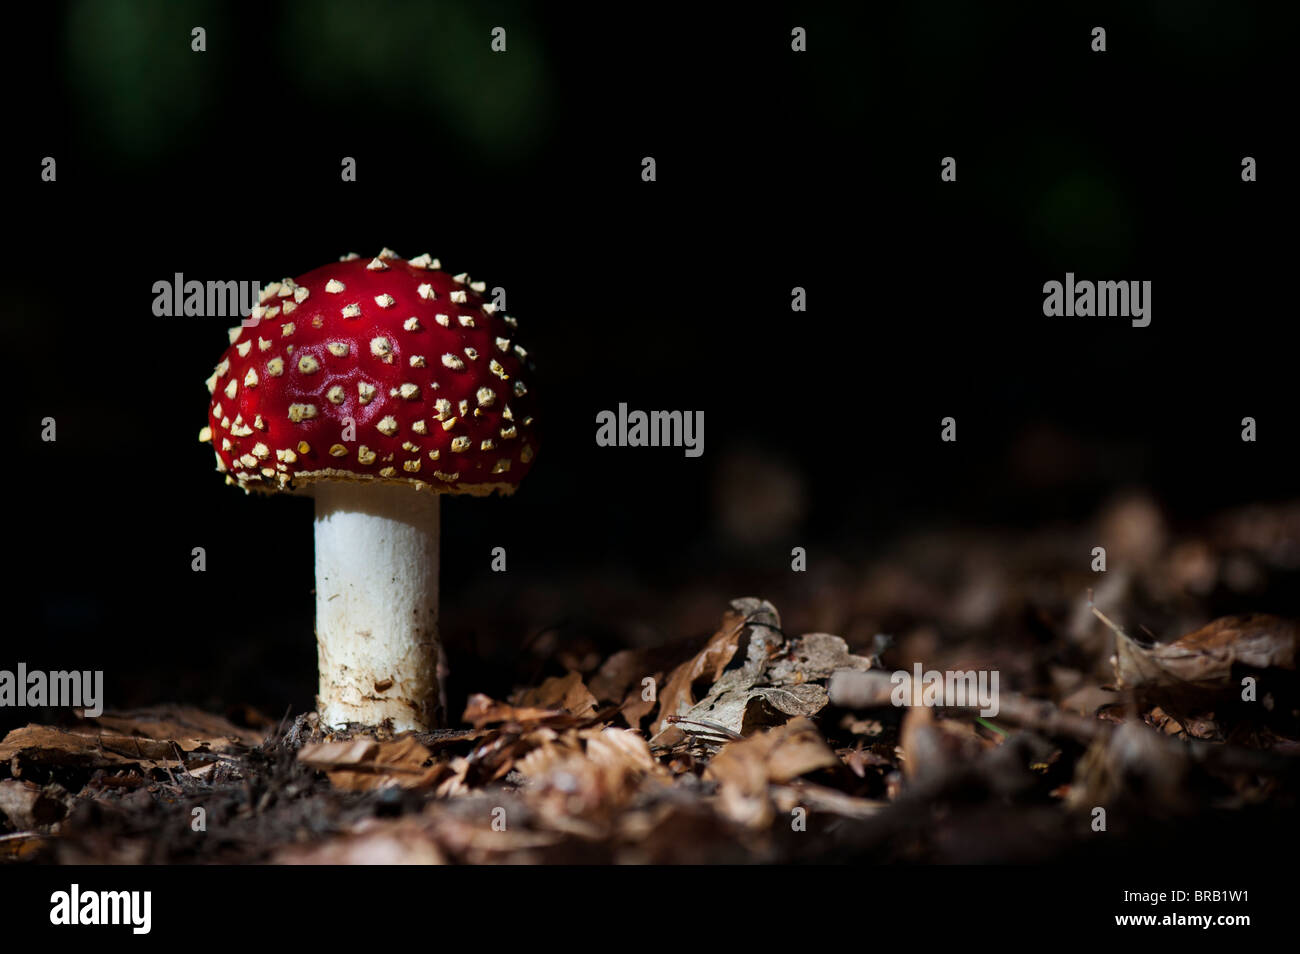 Amanita muscaria, Fly agaric mushroom growing in an english woodland. Stock Photo